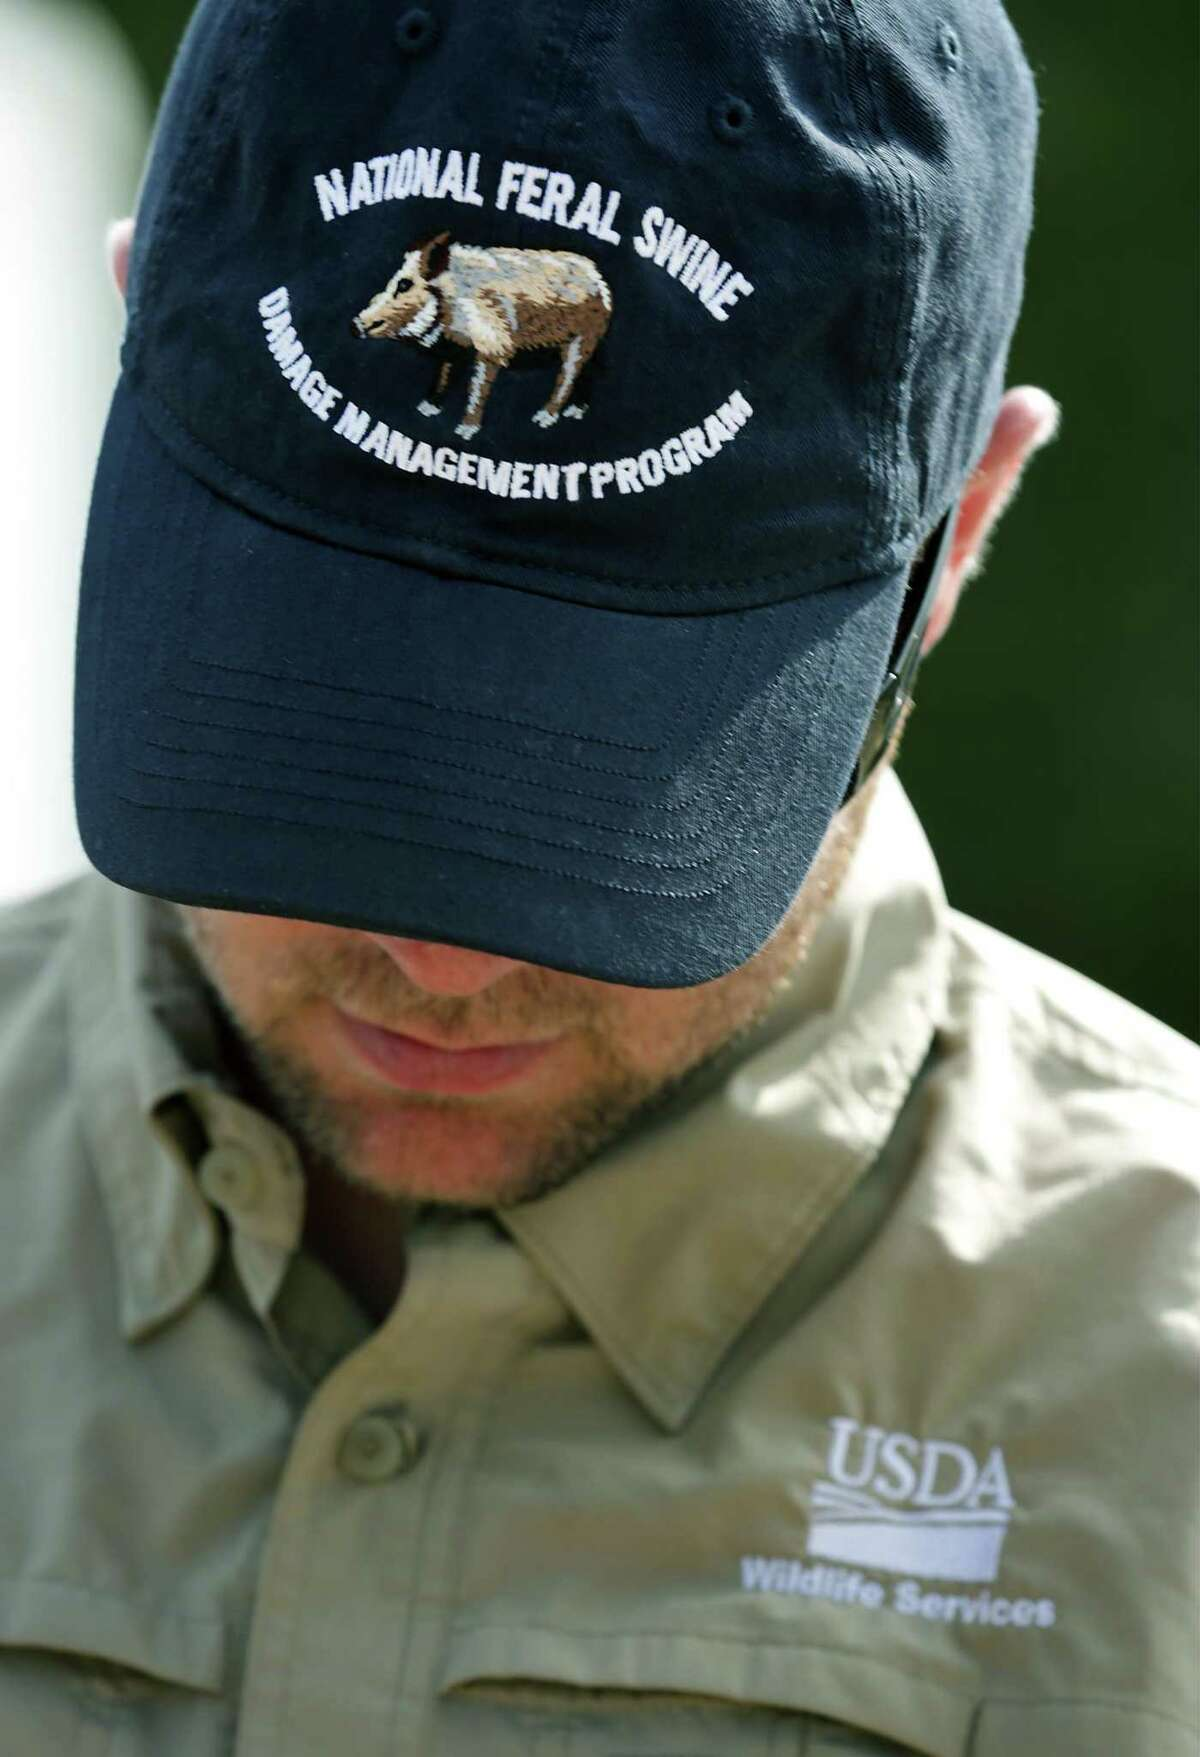 Nathan Snow, Research Biologist with USDA Wildlife Services, wears a hat featuring National Feral Swine Damage Management Program. USDA researchers harvested feral hogs taking their whiskers and a cutting from their tail to track the feeder delivery system being used is the brush at Camp Bullis, on Monday, Sept. 4, 2017. The 502d Civil Engineer Squadron of Joint Base San Antonio, located at JBSA Camp Bullis, is working with the USDA on the project.